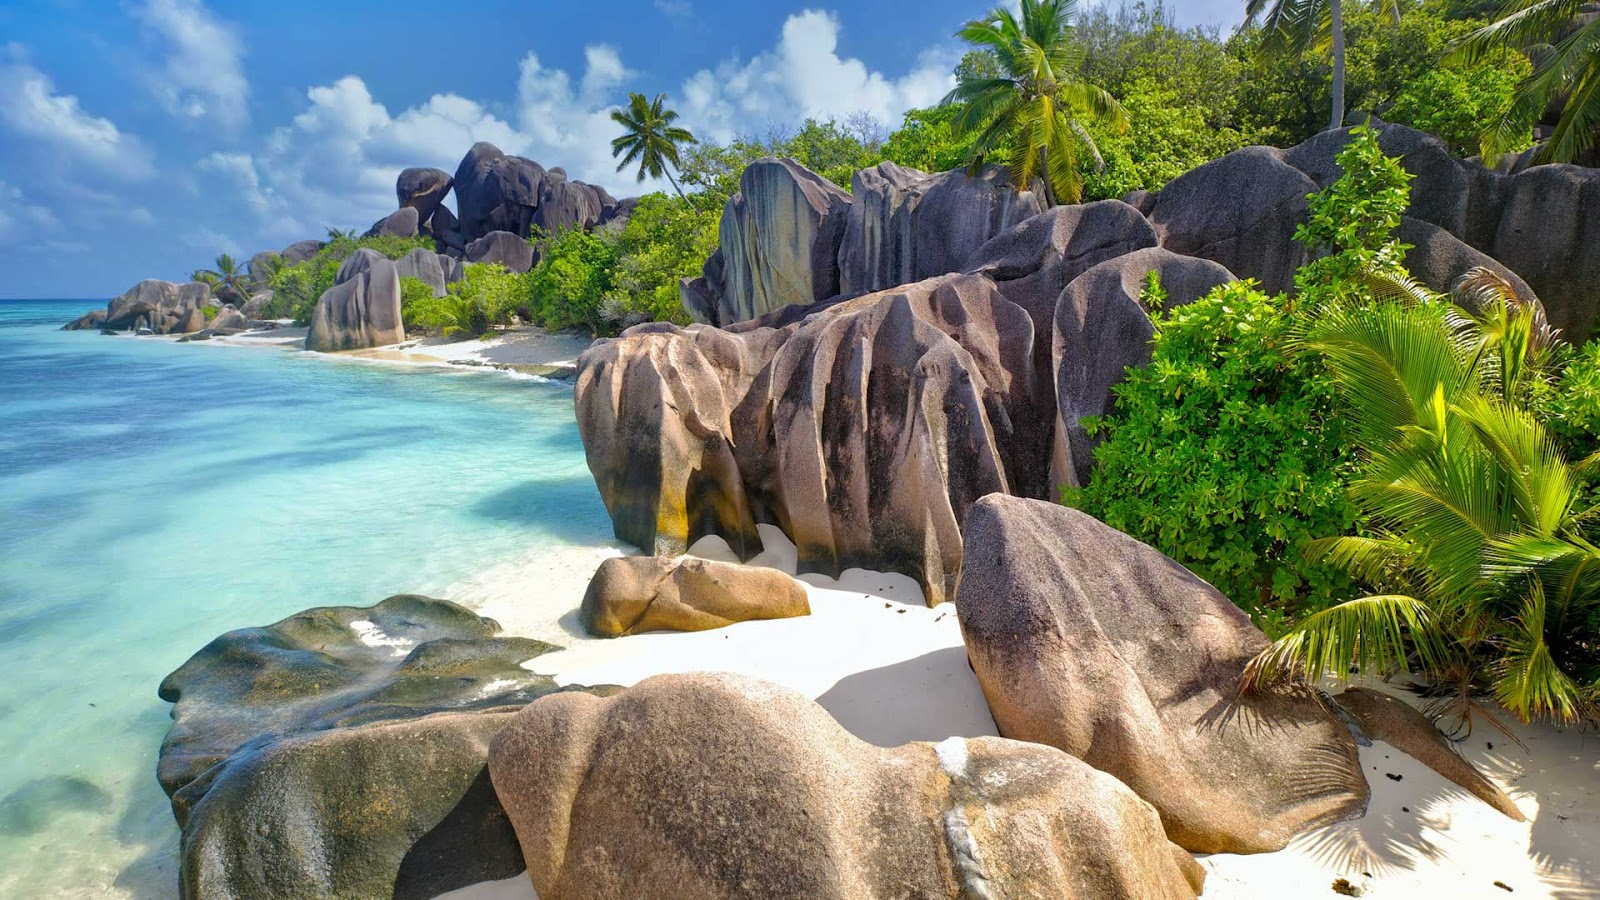 La Digue, an island in the Seychelles